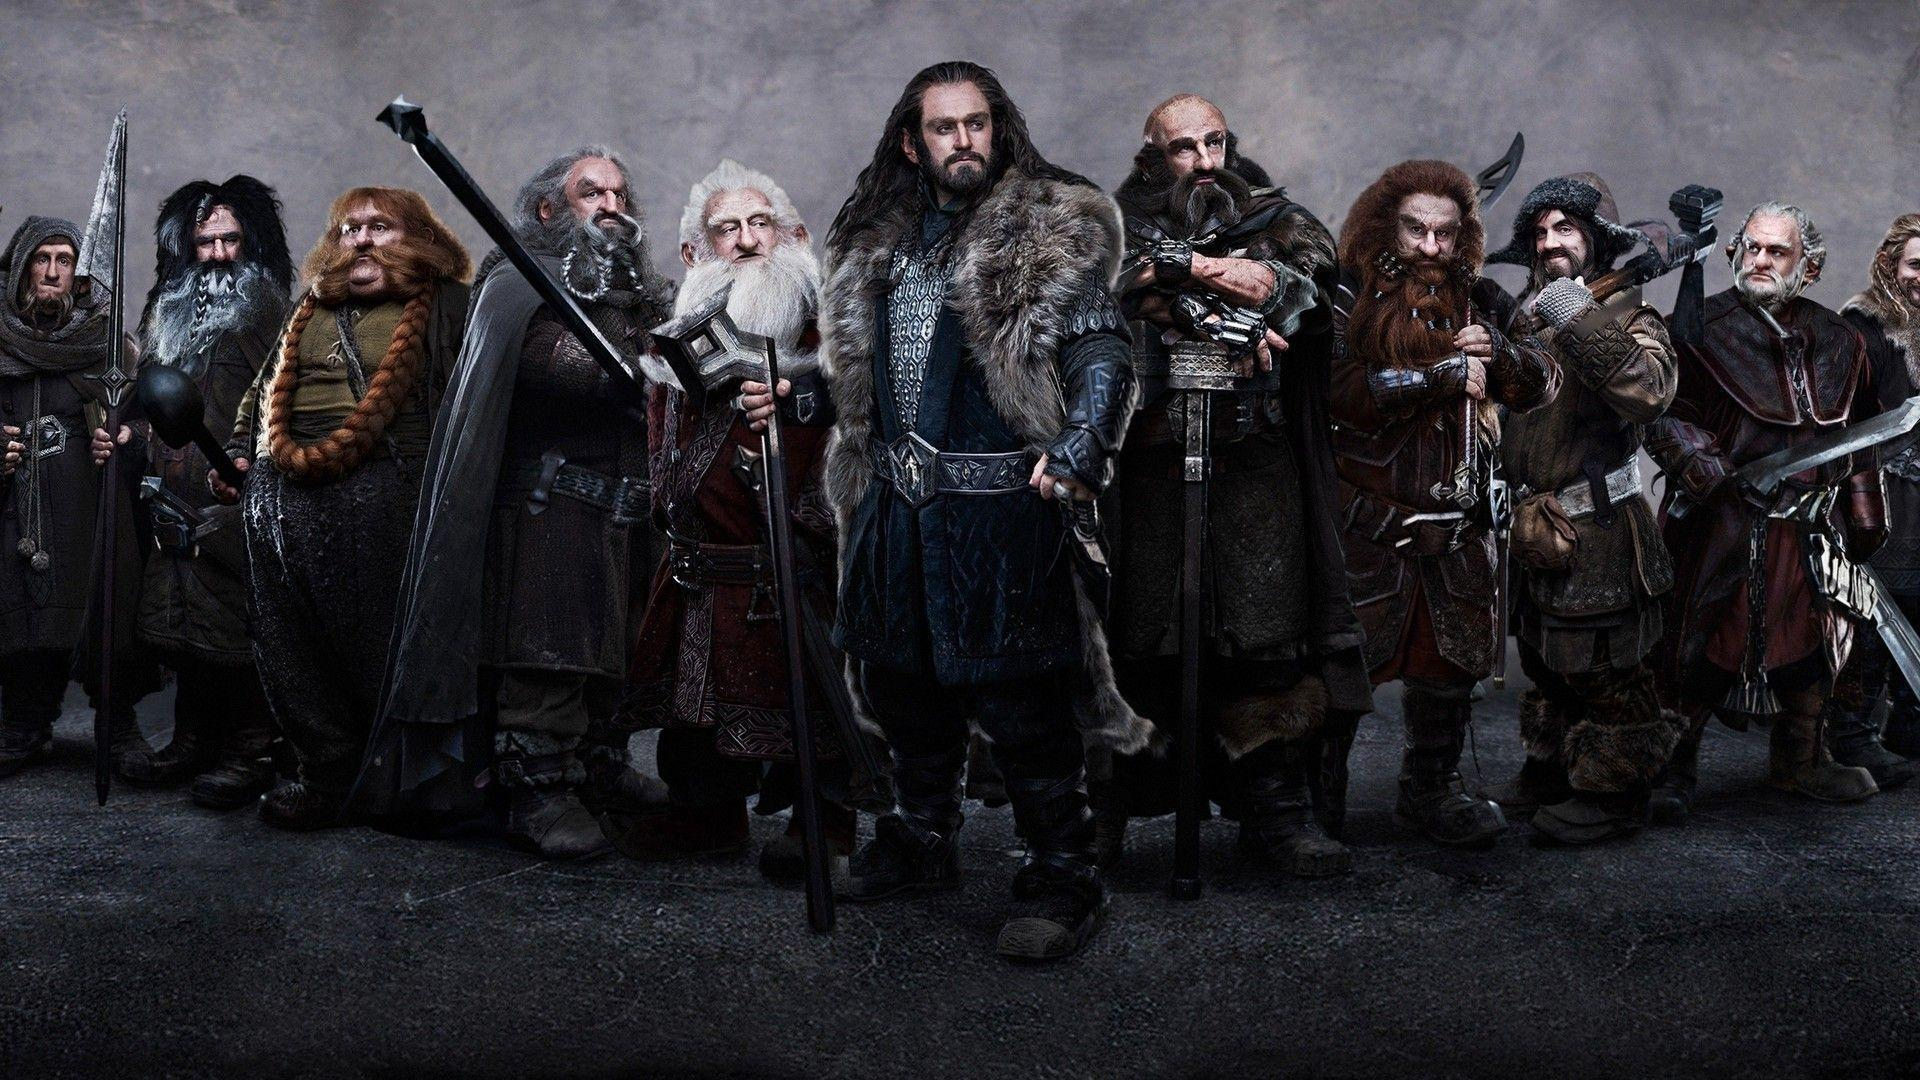 The Hobbit dwarves Wallpaper #